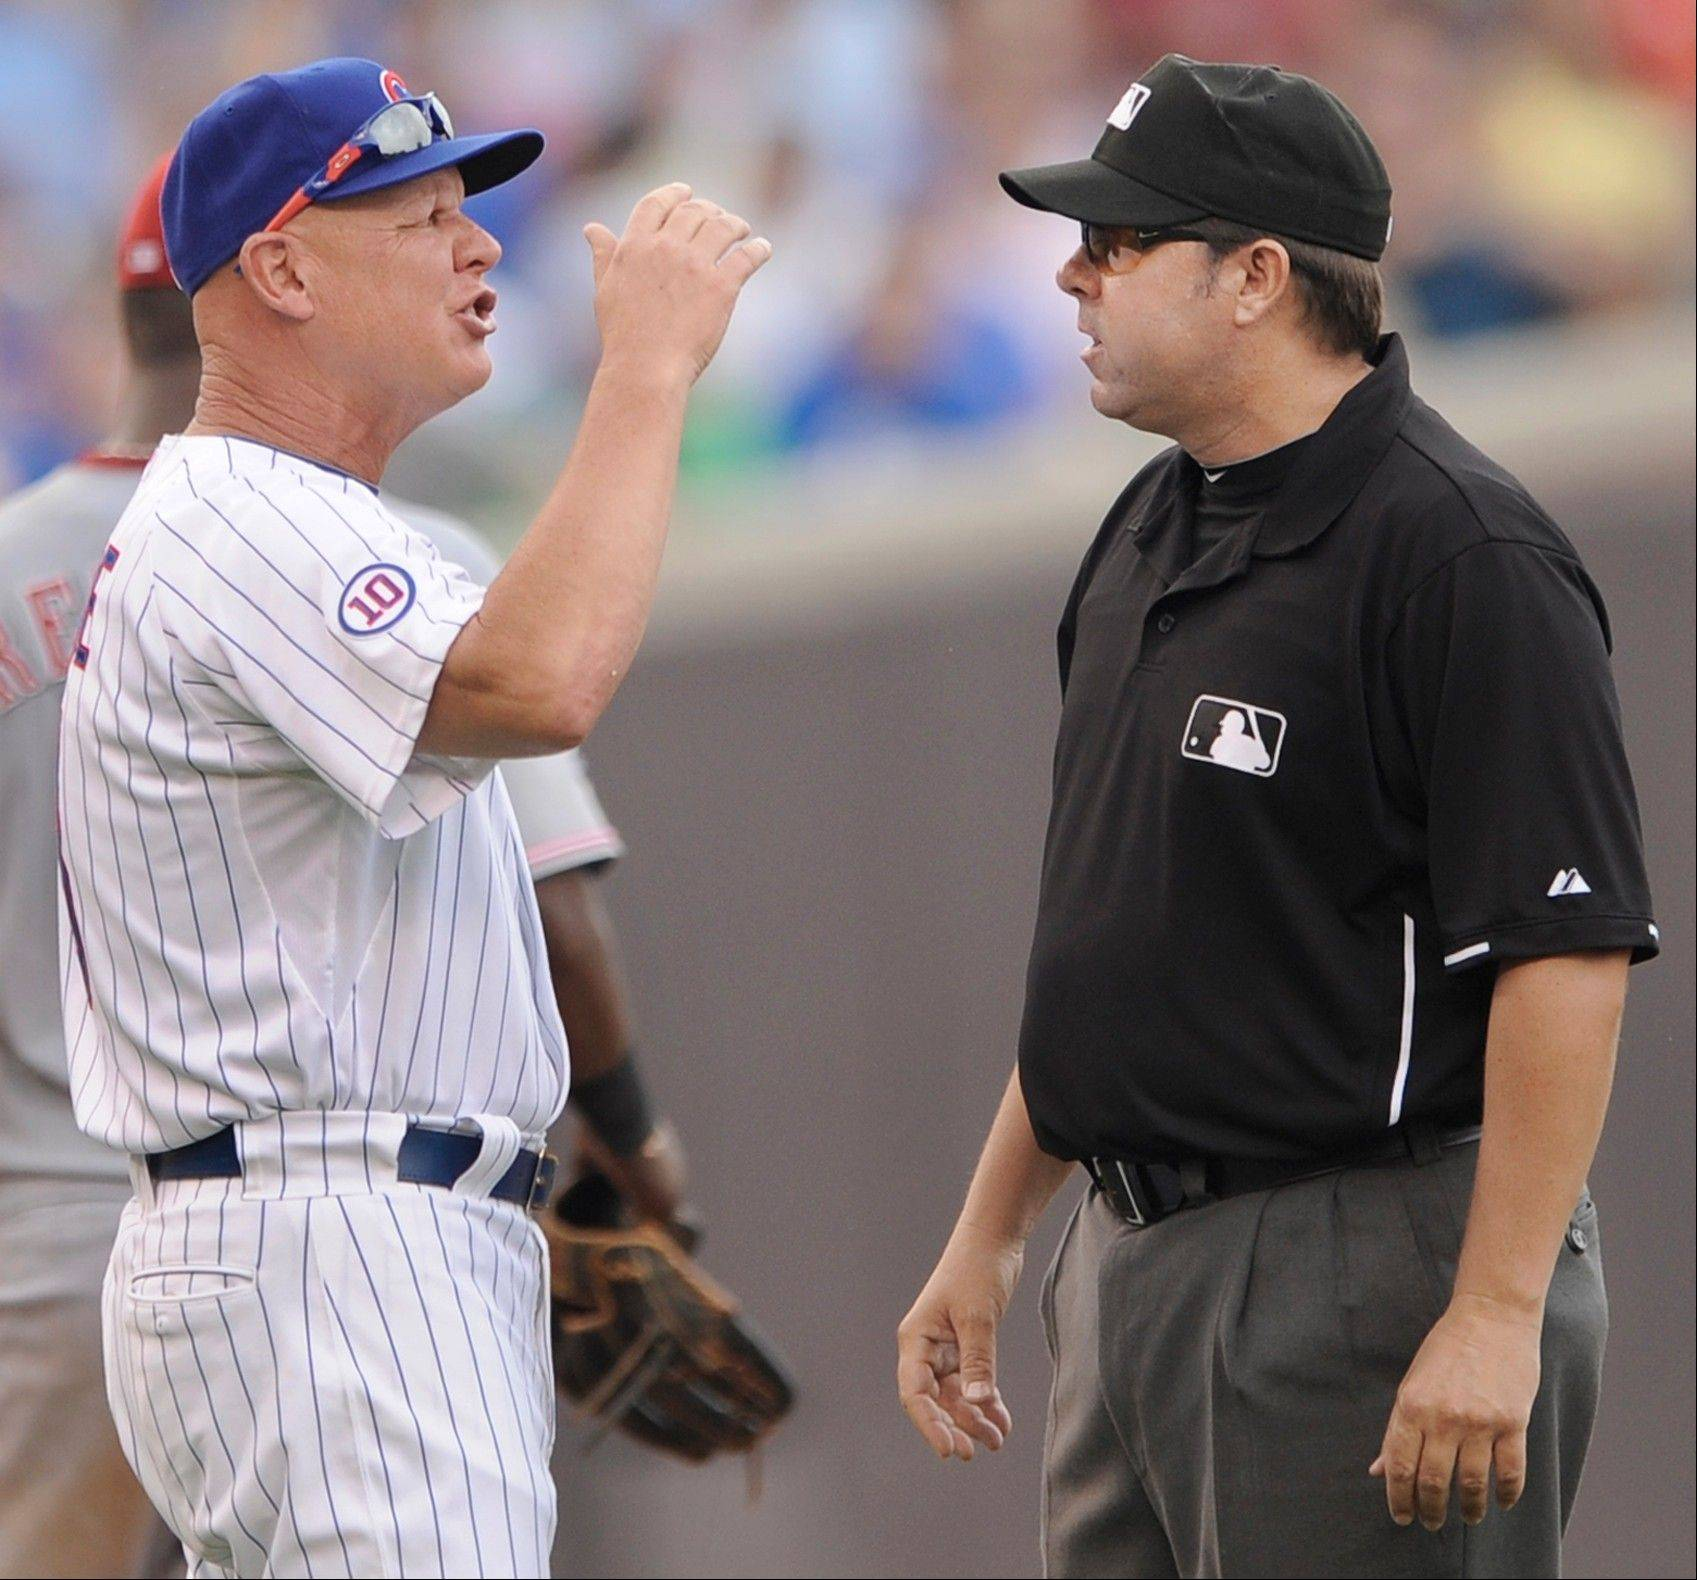 Chicago Cubs manager Mike Quade left, argues with second base umpire Doug Eddings during the fourth inning of a baseball game against the Cincinnati Reds in Chicago, Saturday, Aug. 6, 2011. Chicago won 11-4.